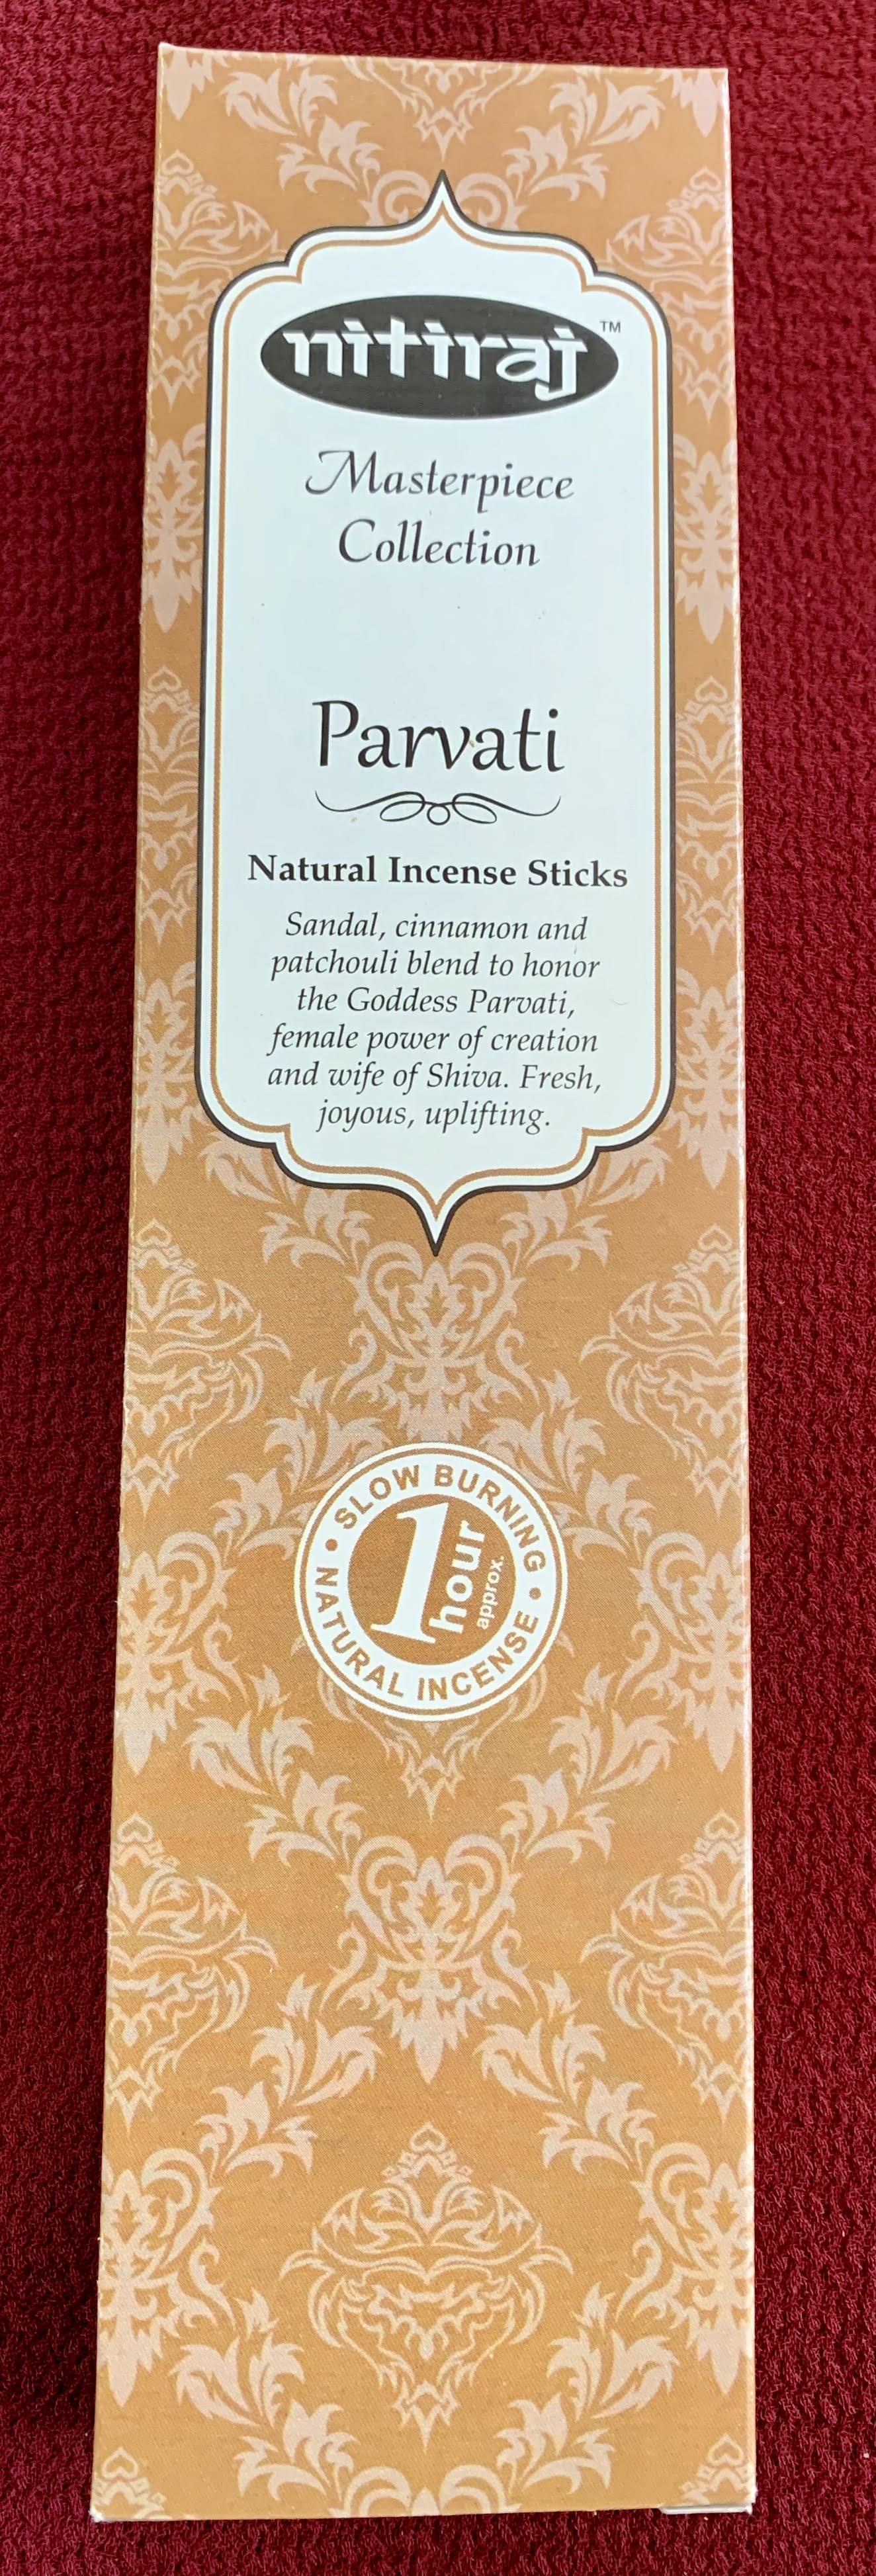 Nitiraj  Masterpiece Incense